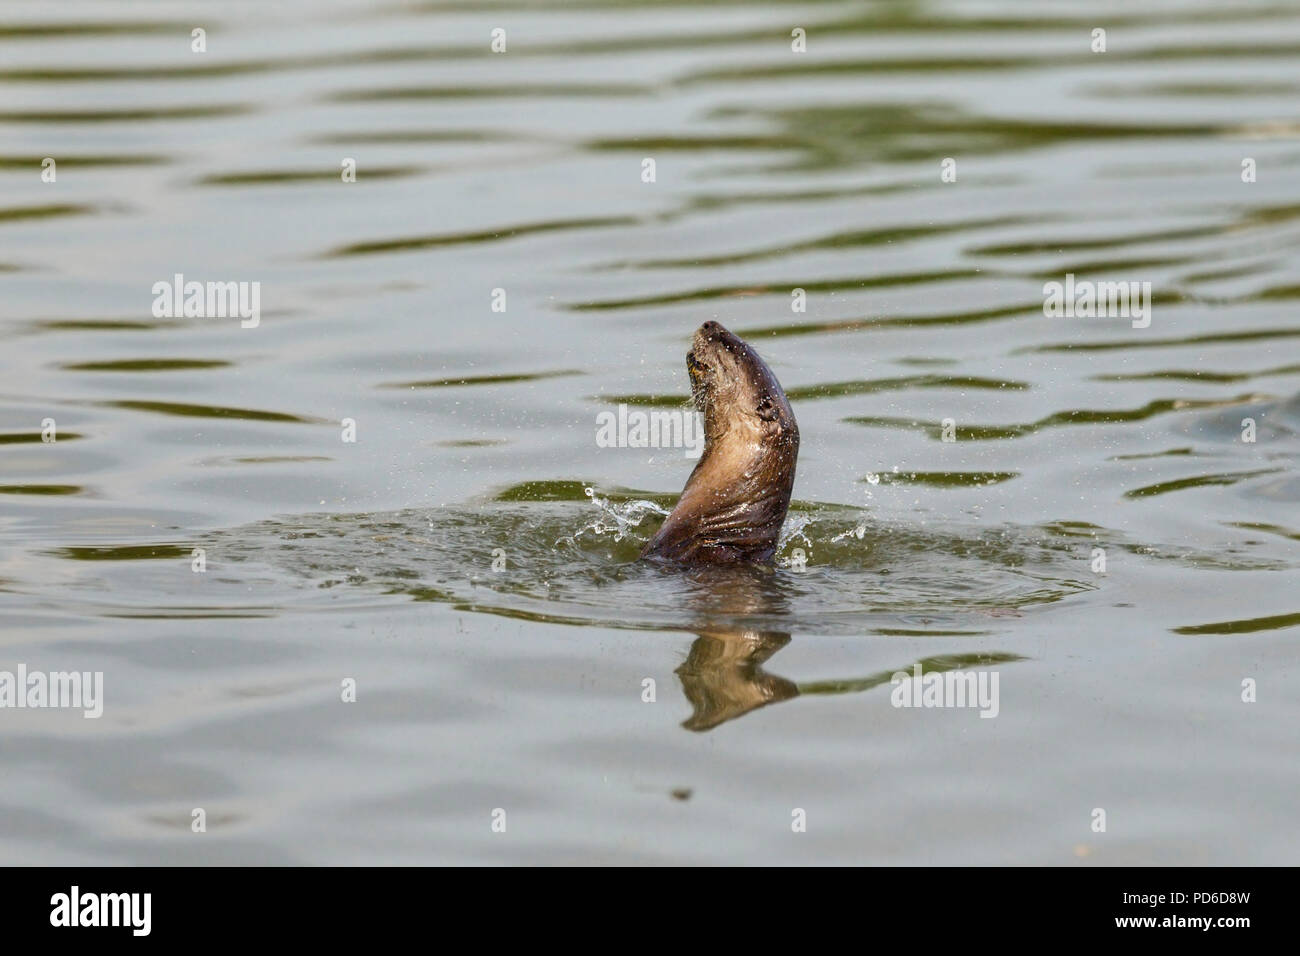 Smooth Coated Otter shakes out water from its fur, Singapore